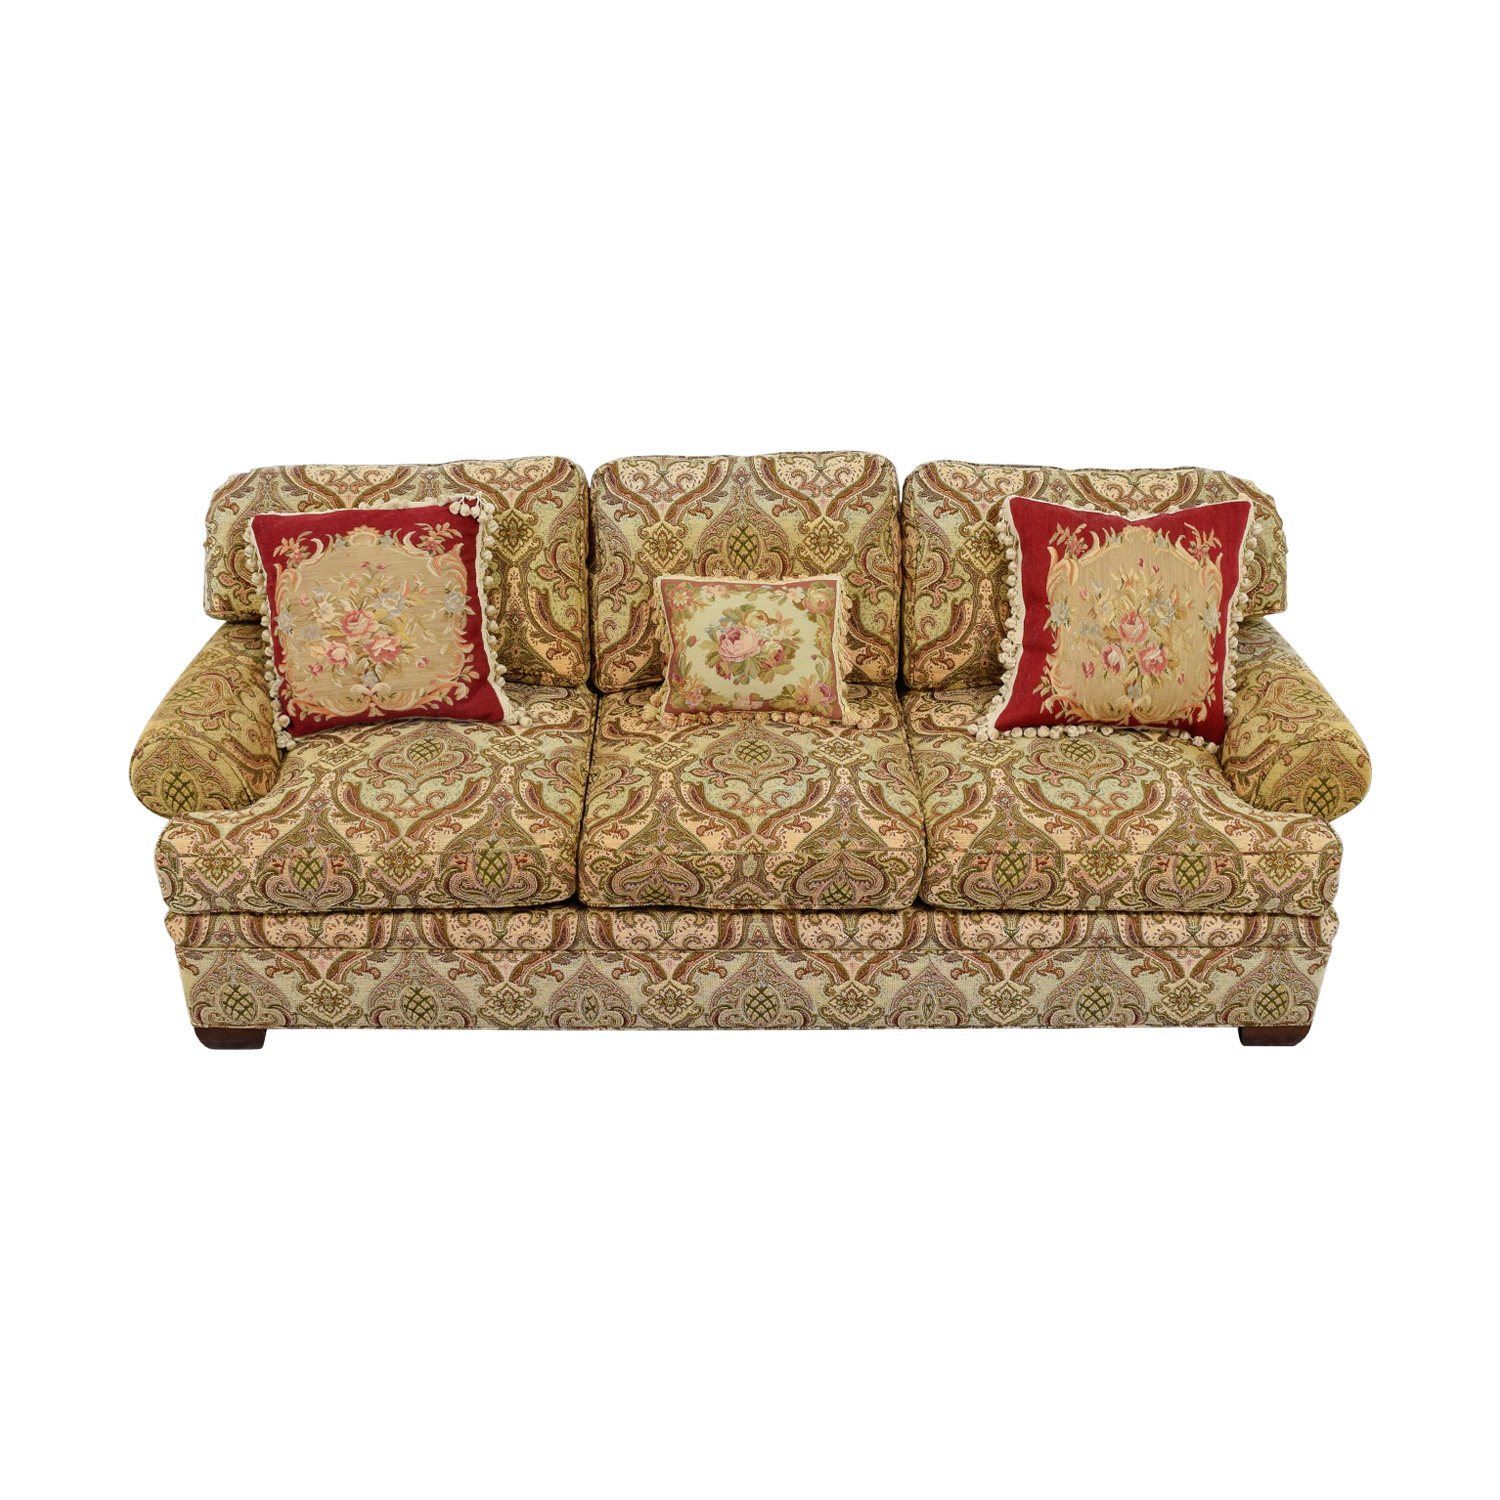 Kravet Kravet Custom Chenille Paisley Three-Cushion Sofa dimensions